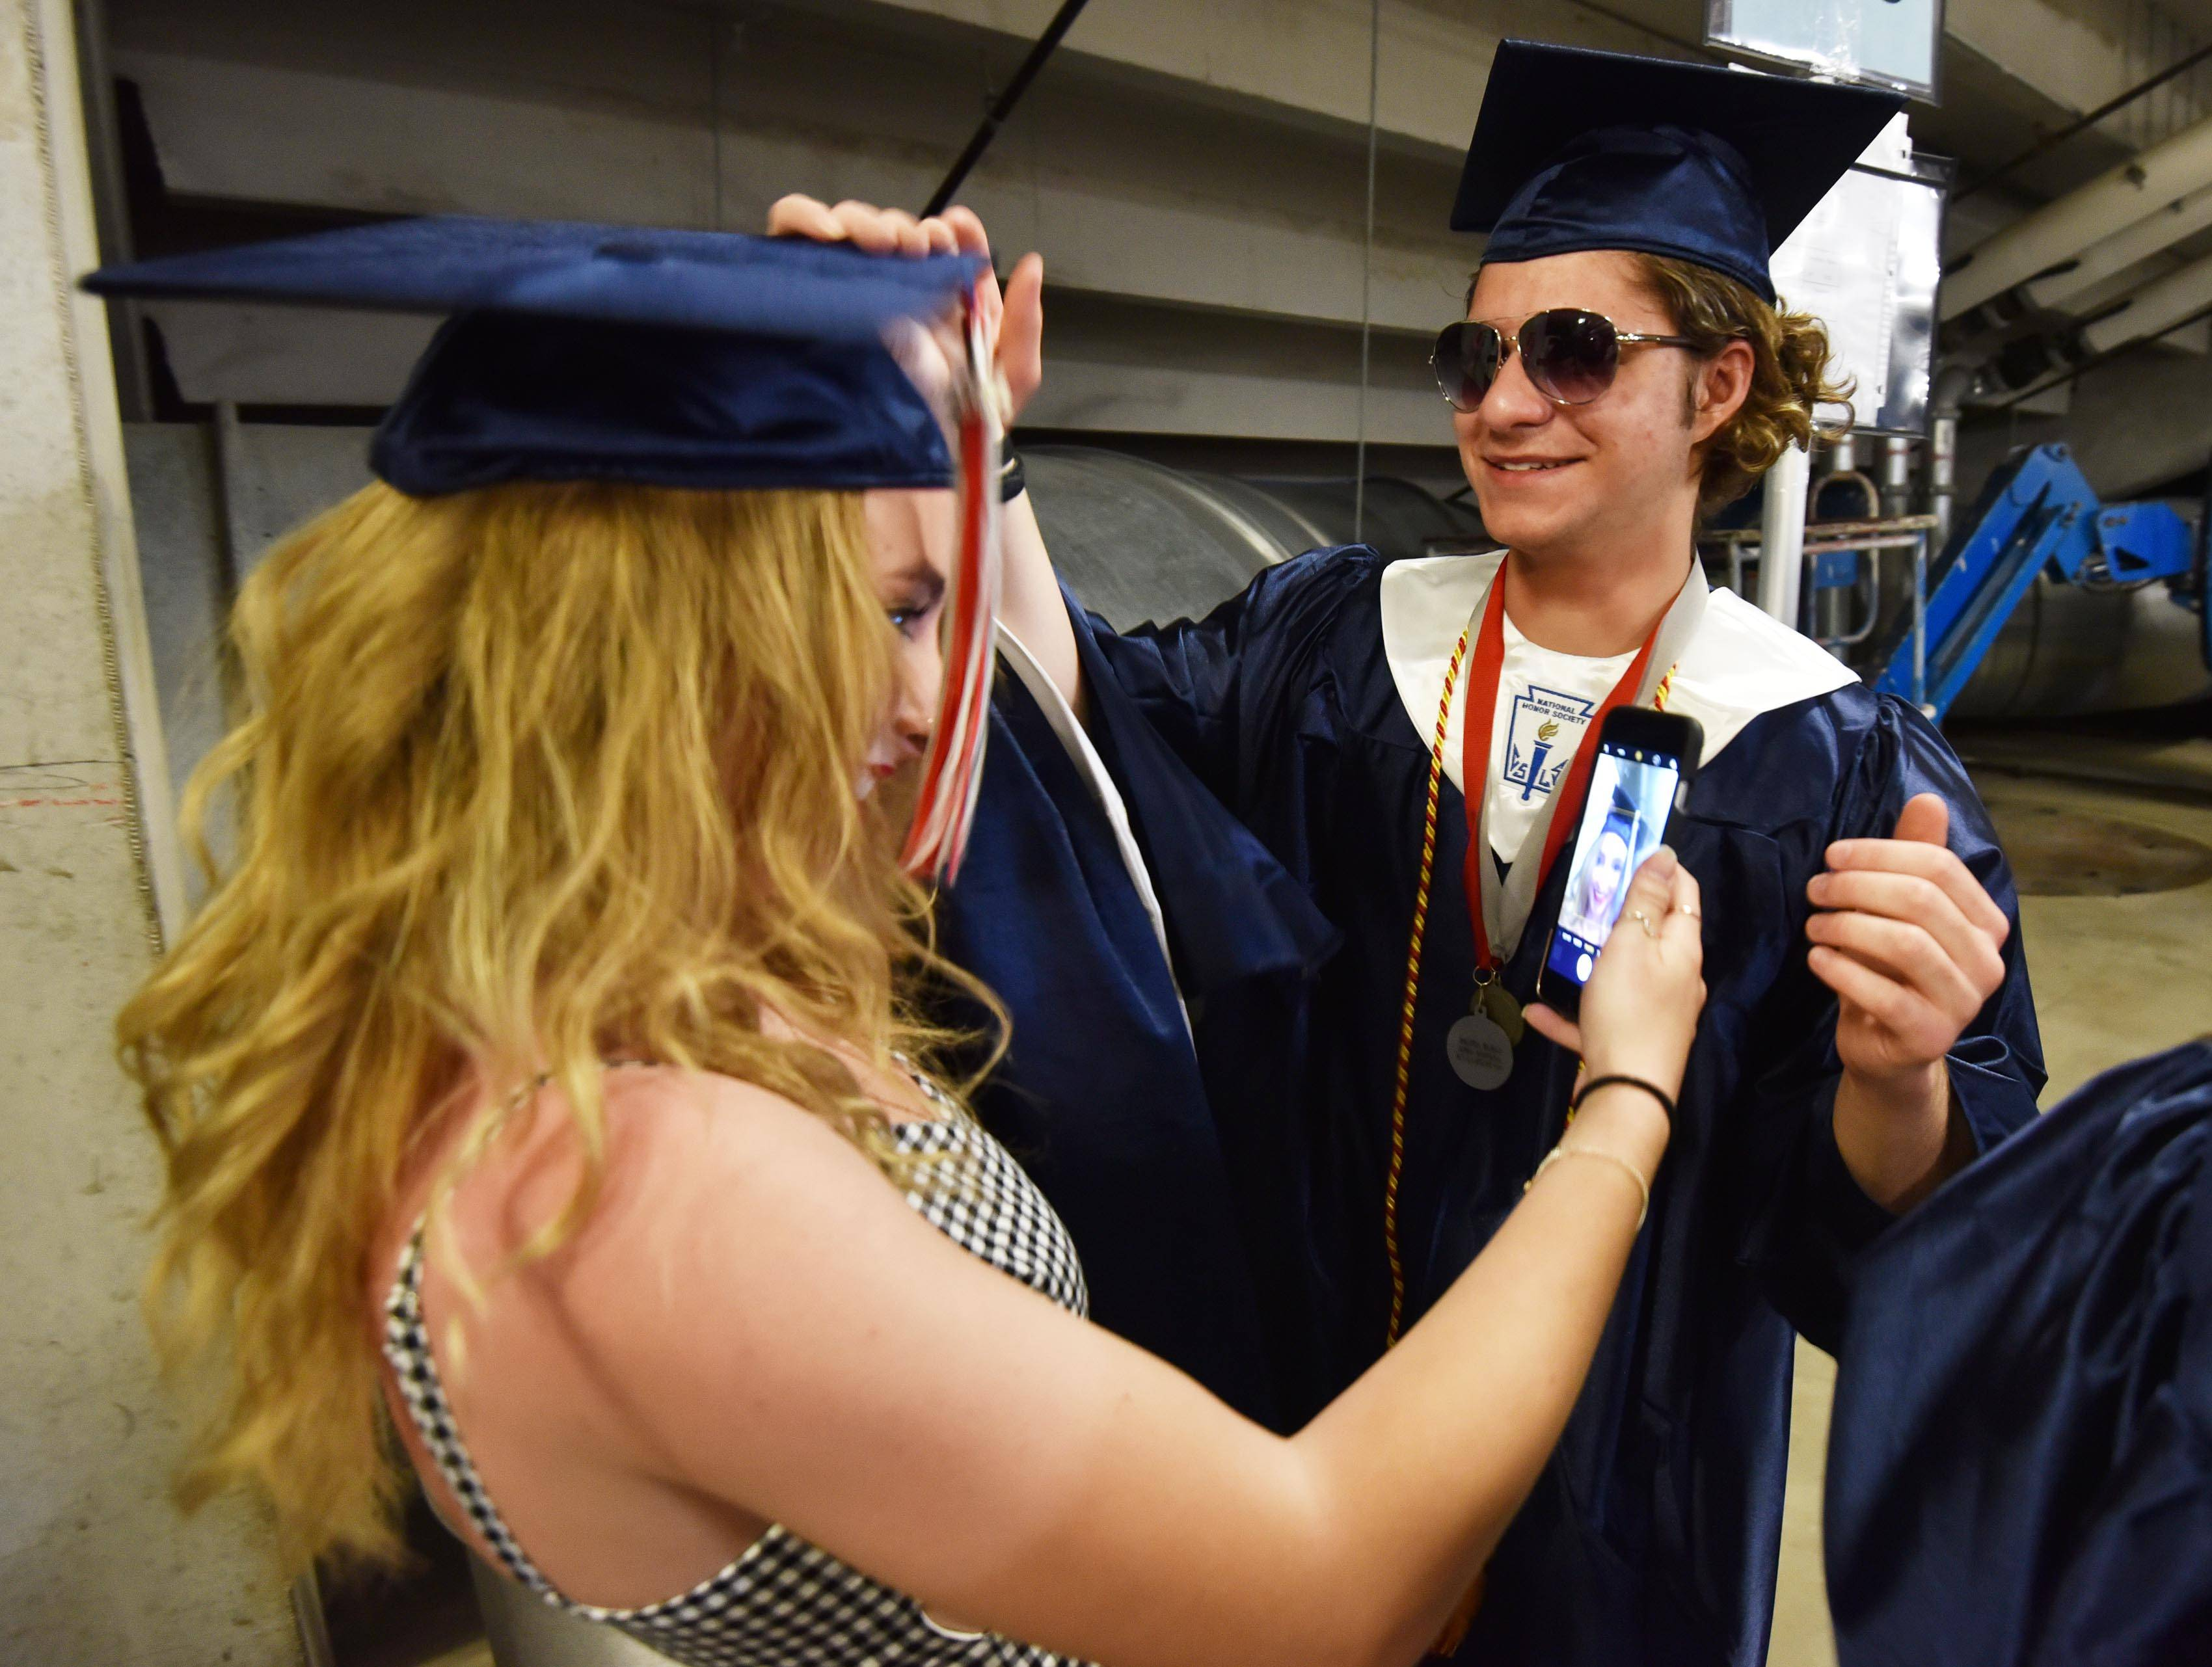 Ethan Schneider helps his sister Isabella with her cap before the South Elgin graduation ceremony at the Sears Centre in Hoffman Estates Saturday.